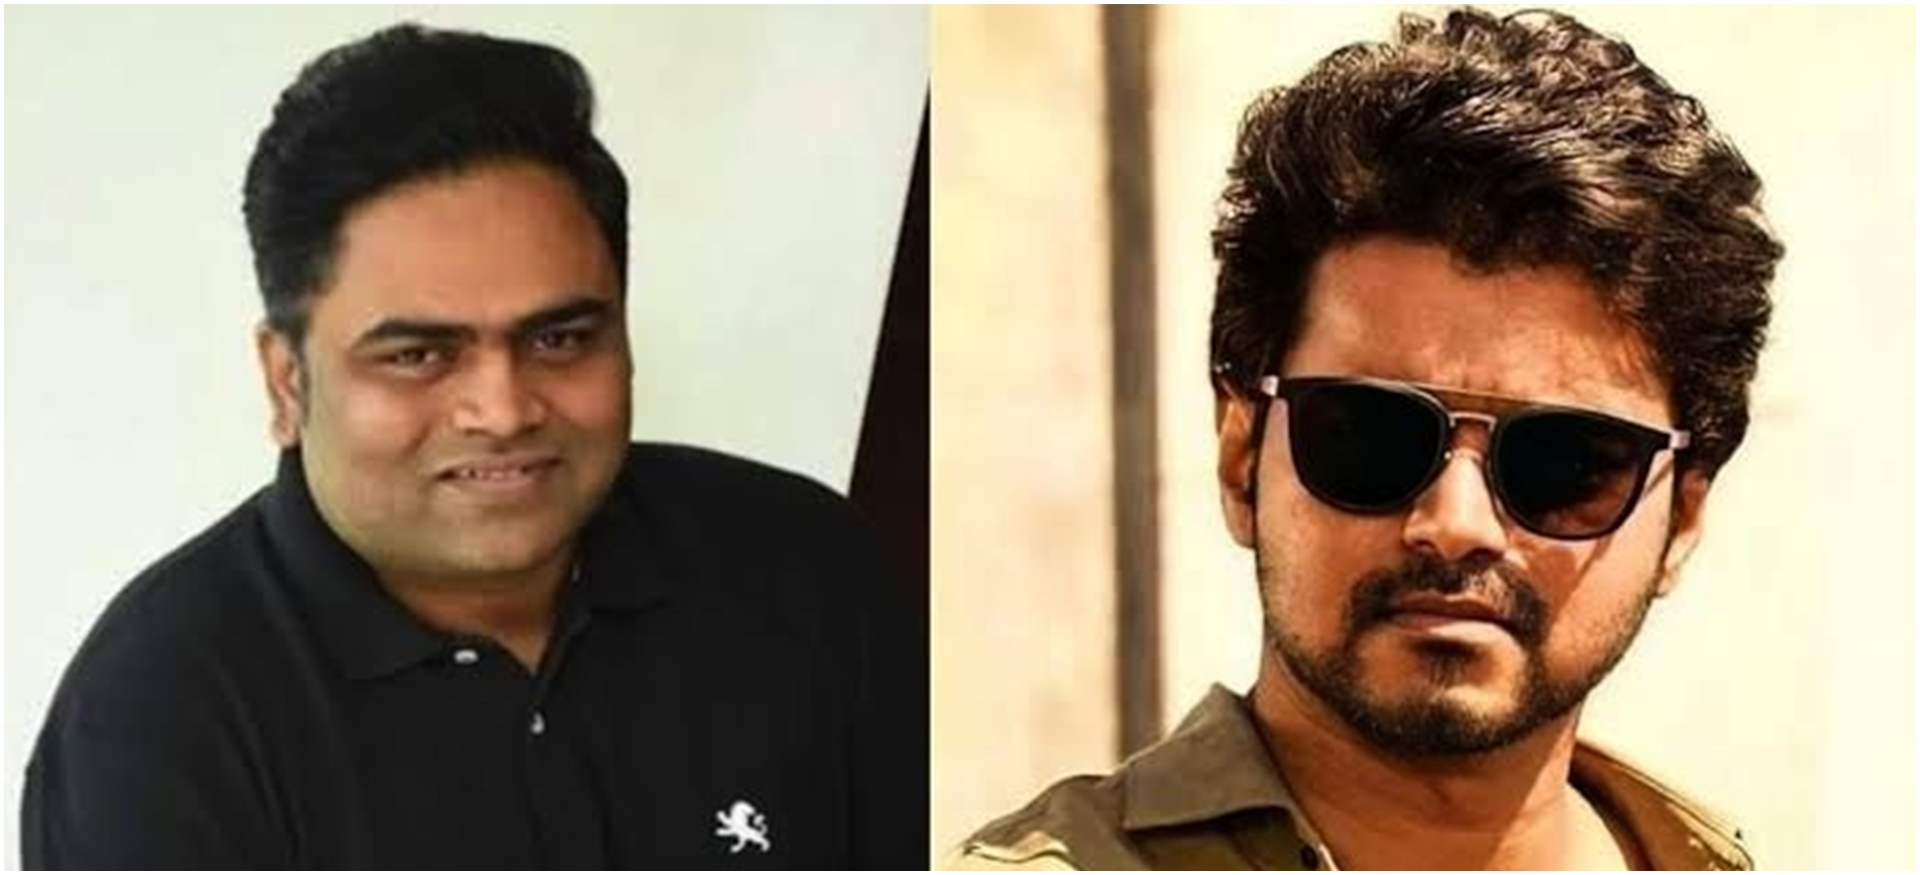 Thalapathy Vijay is signed this Blockbuster Telugu director for his next film